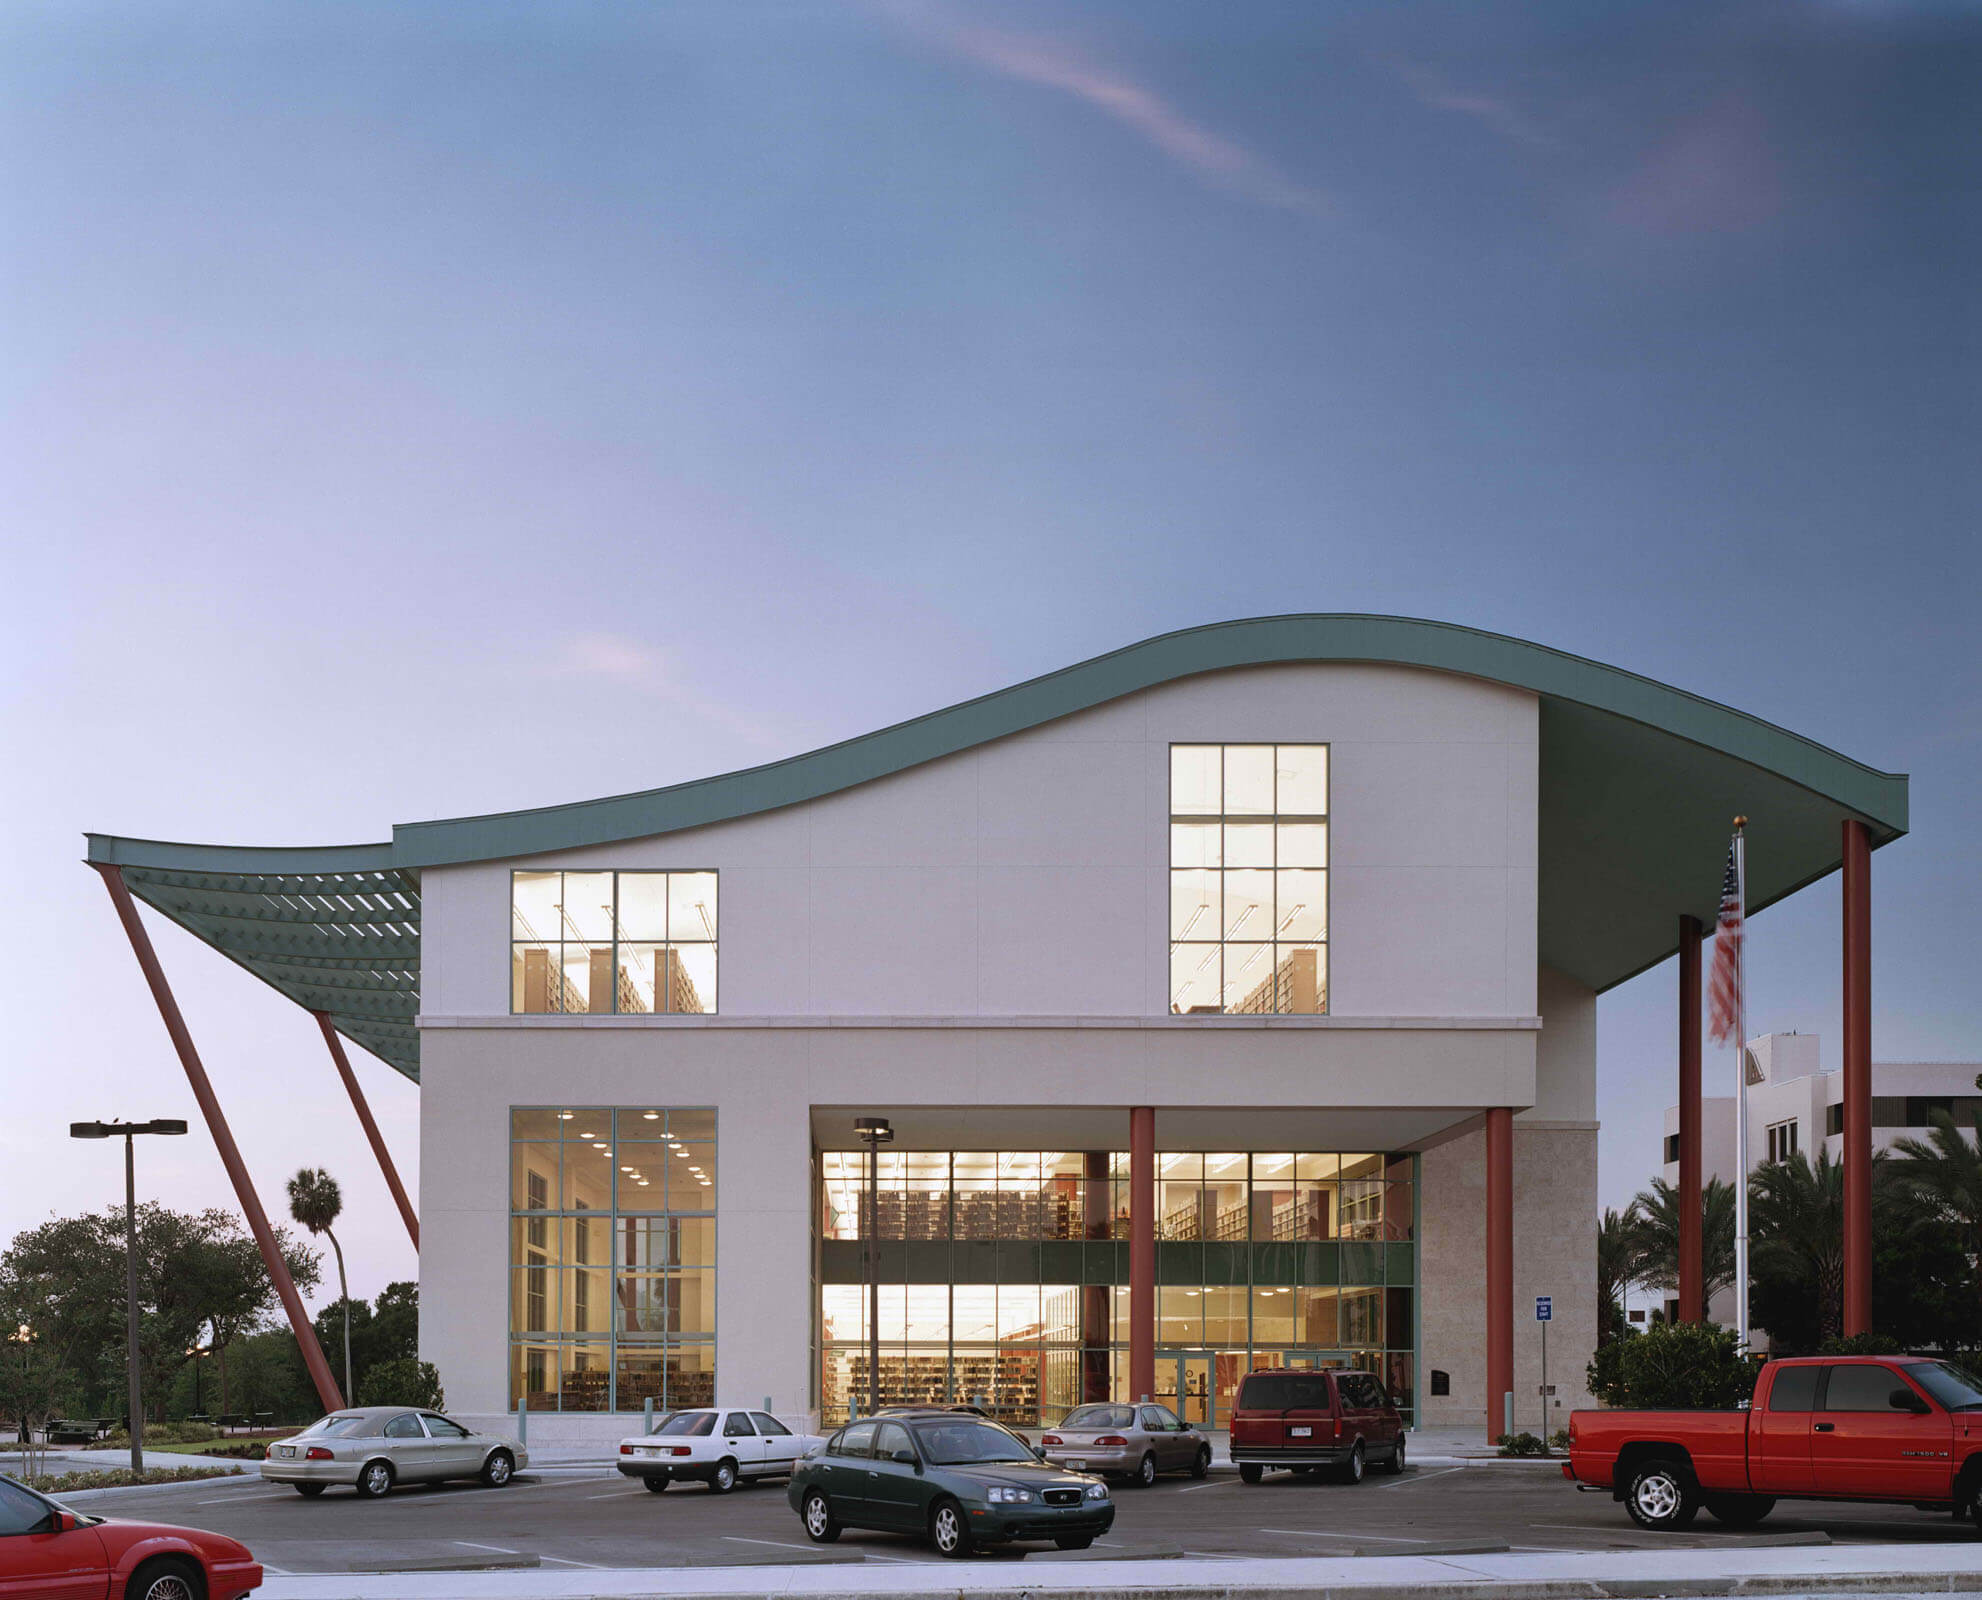 Exterior of the Clearwater Main Public Library